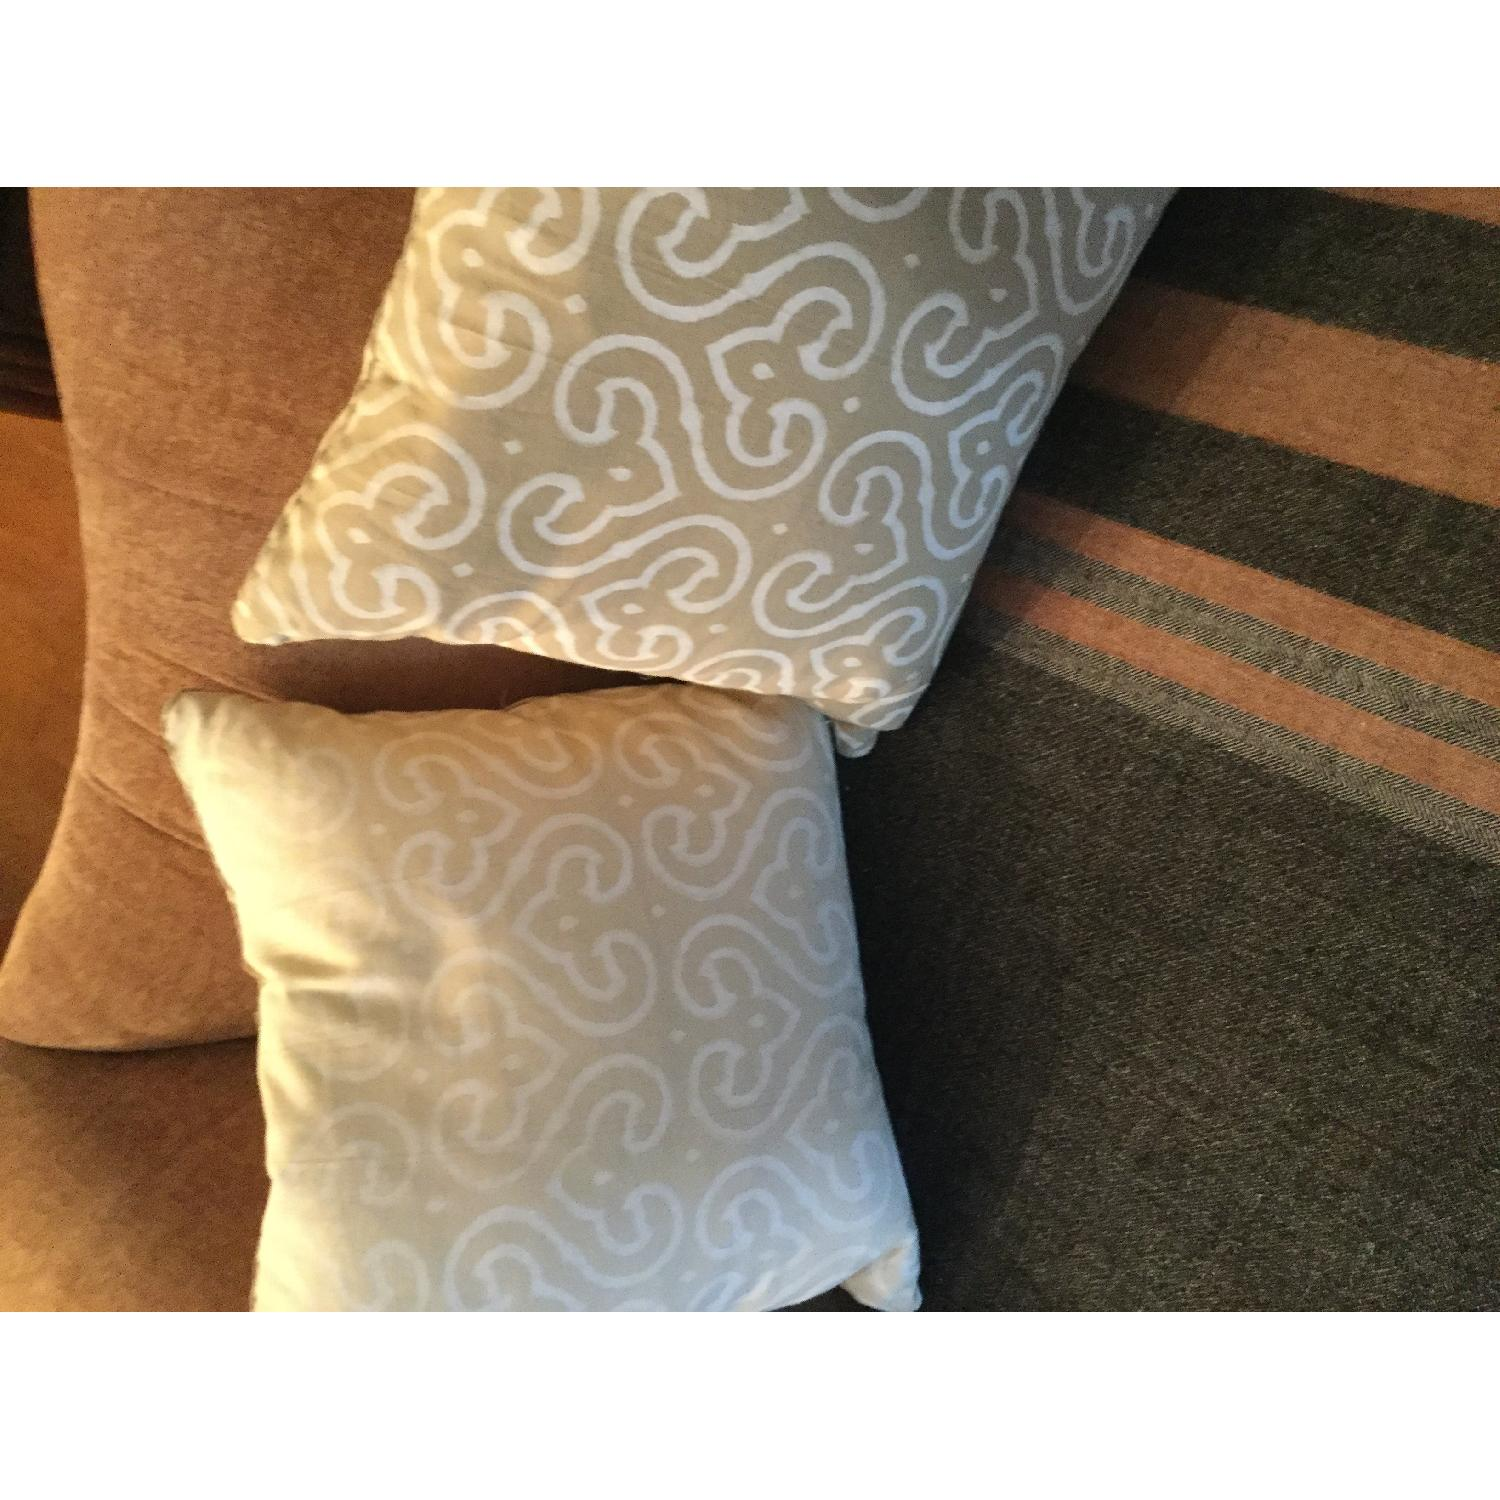 ABC Carpet And Home Madeline Weinrib Pillows-1